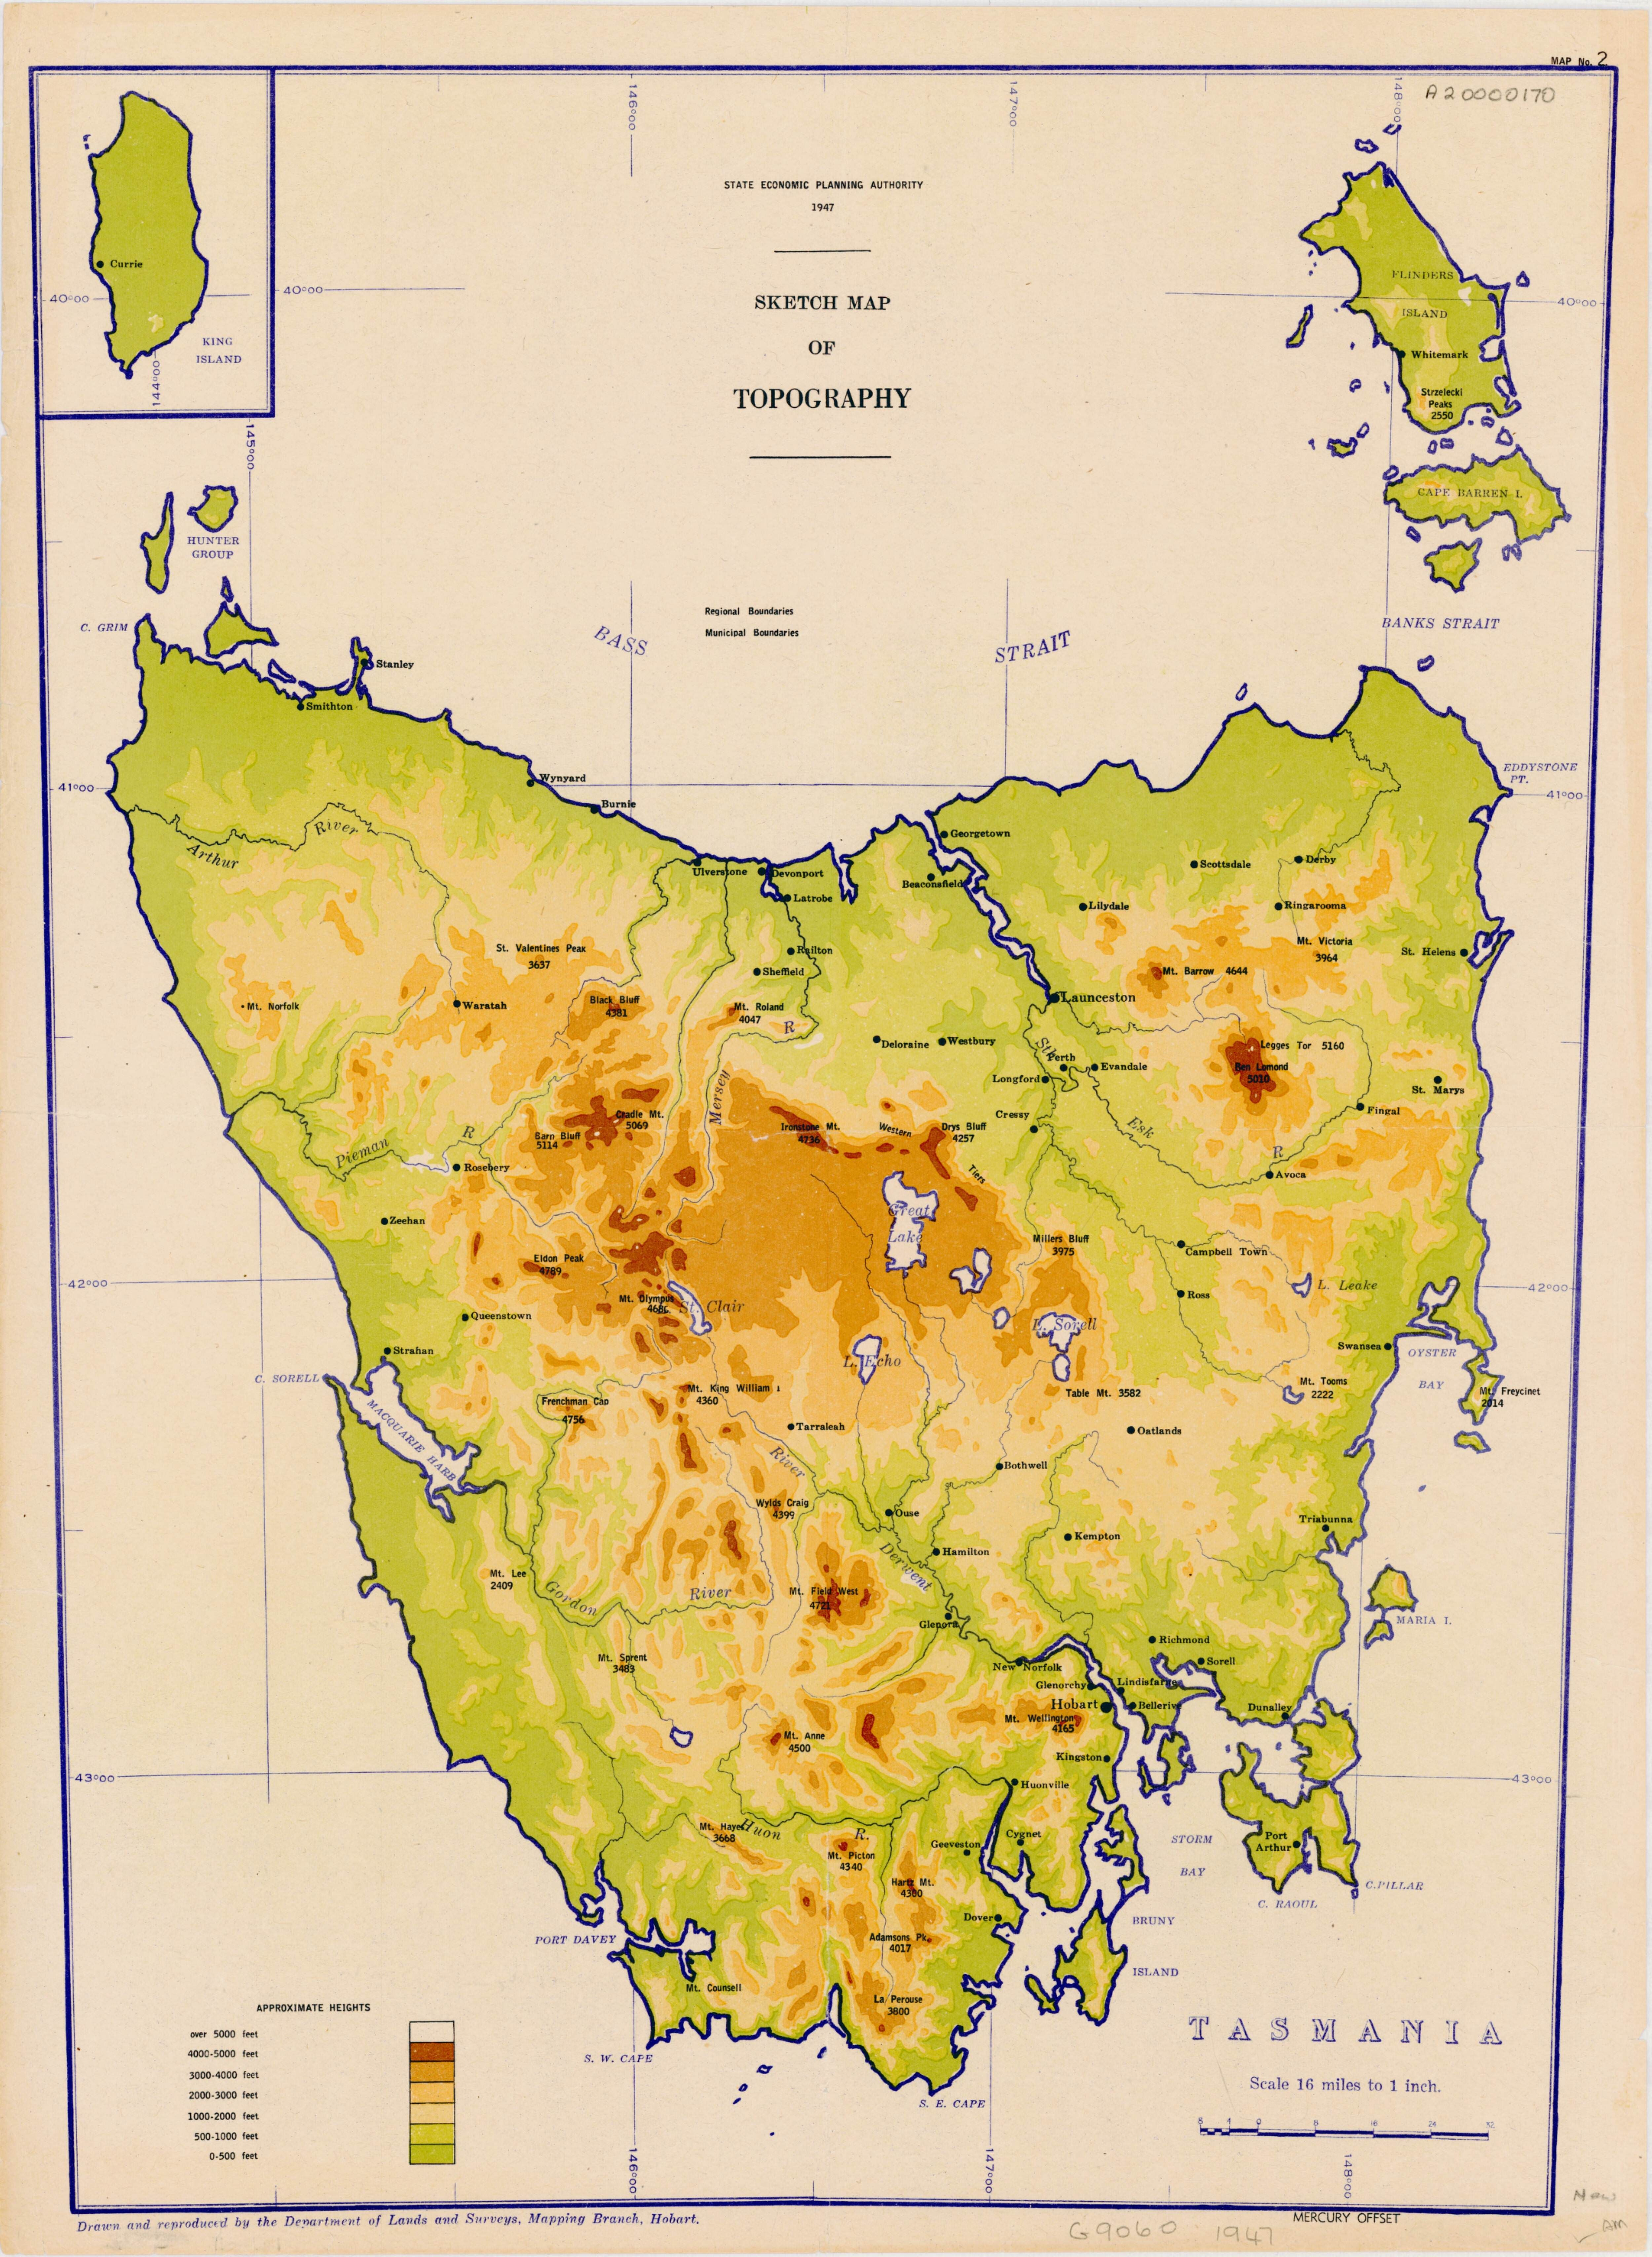 Elevation map of tasmania from 1947 sublime maps pinterest elevation map of tasmania from 1947 gumiabroncs Choice Image